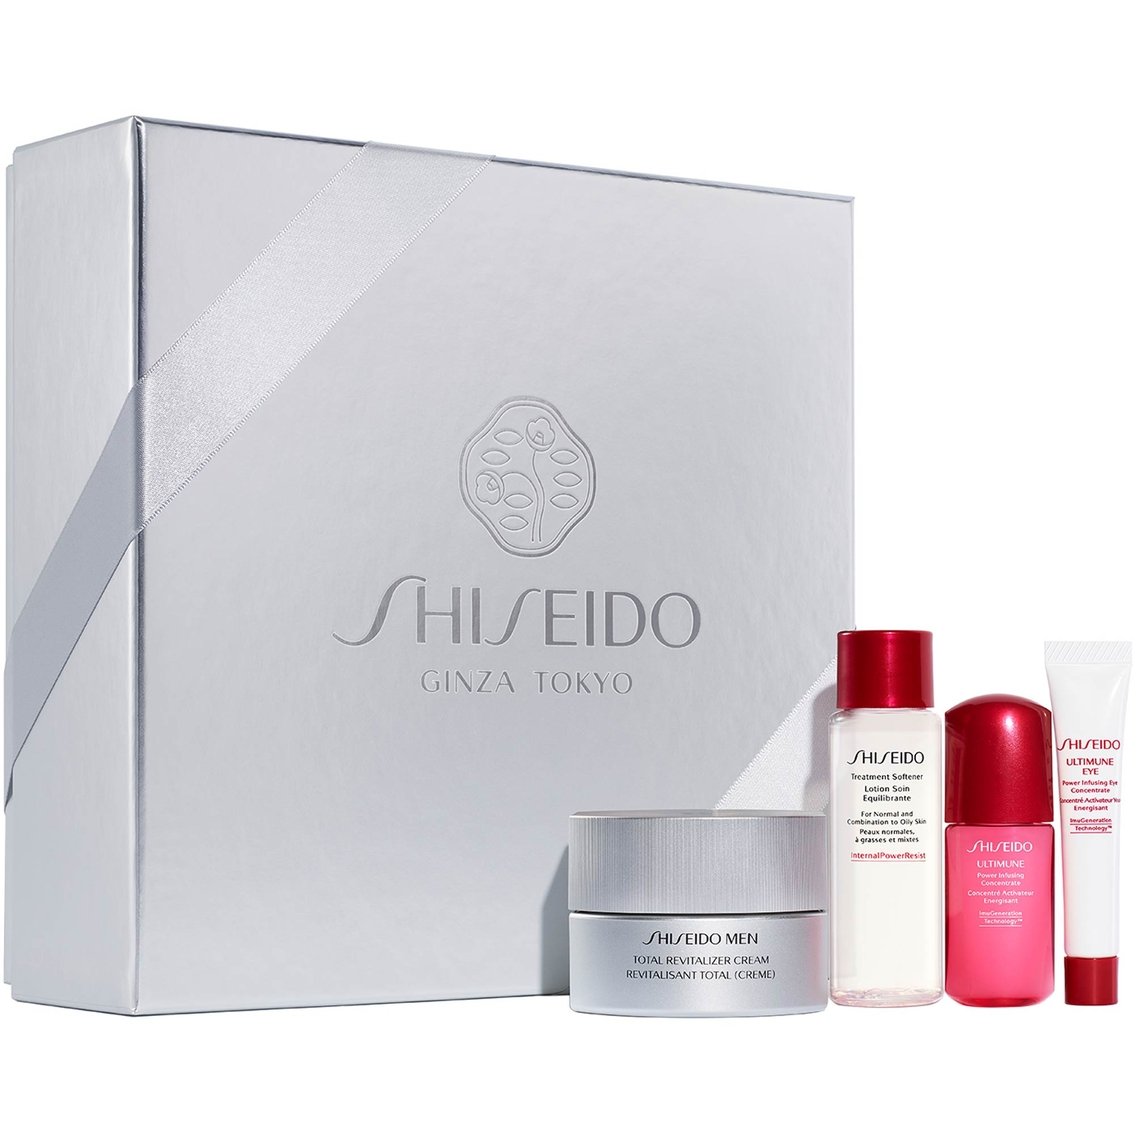 Shiseido Men S Skincare Essentials Skin Care Gift Sets Beauty Health Shop The Exchange